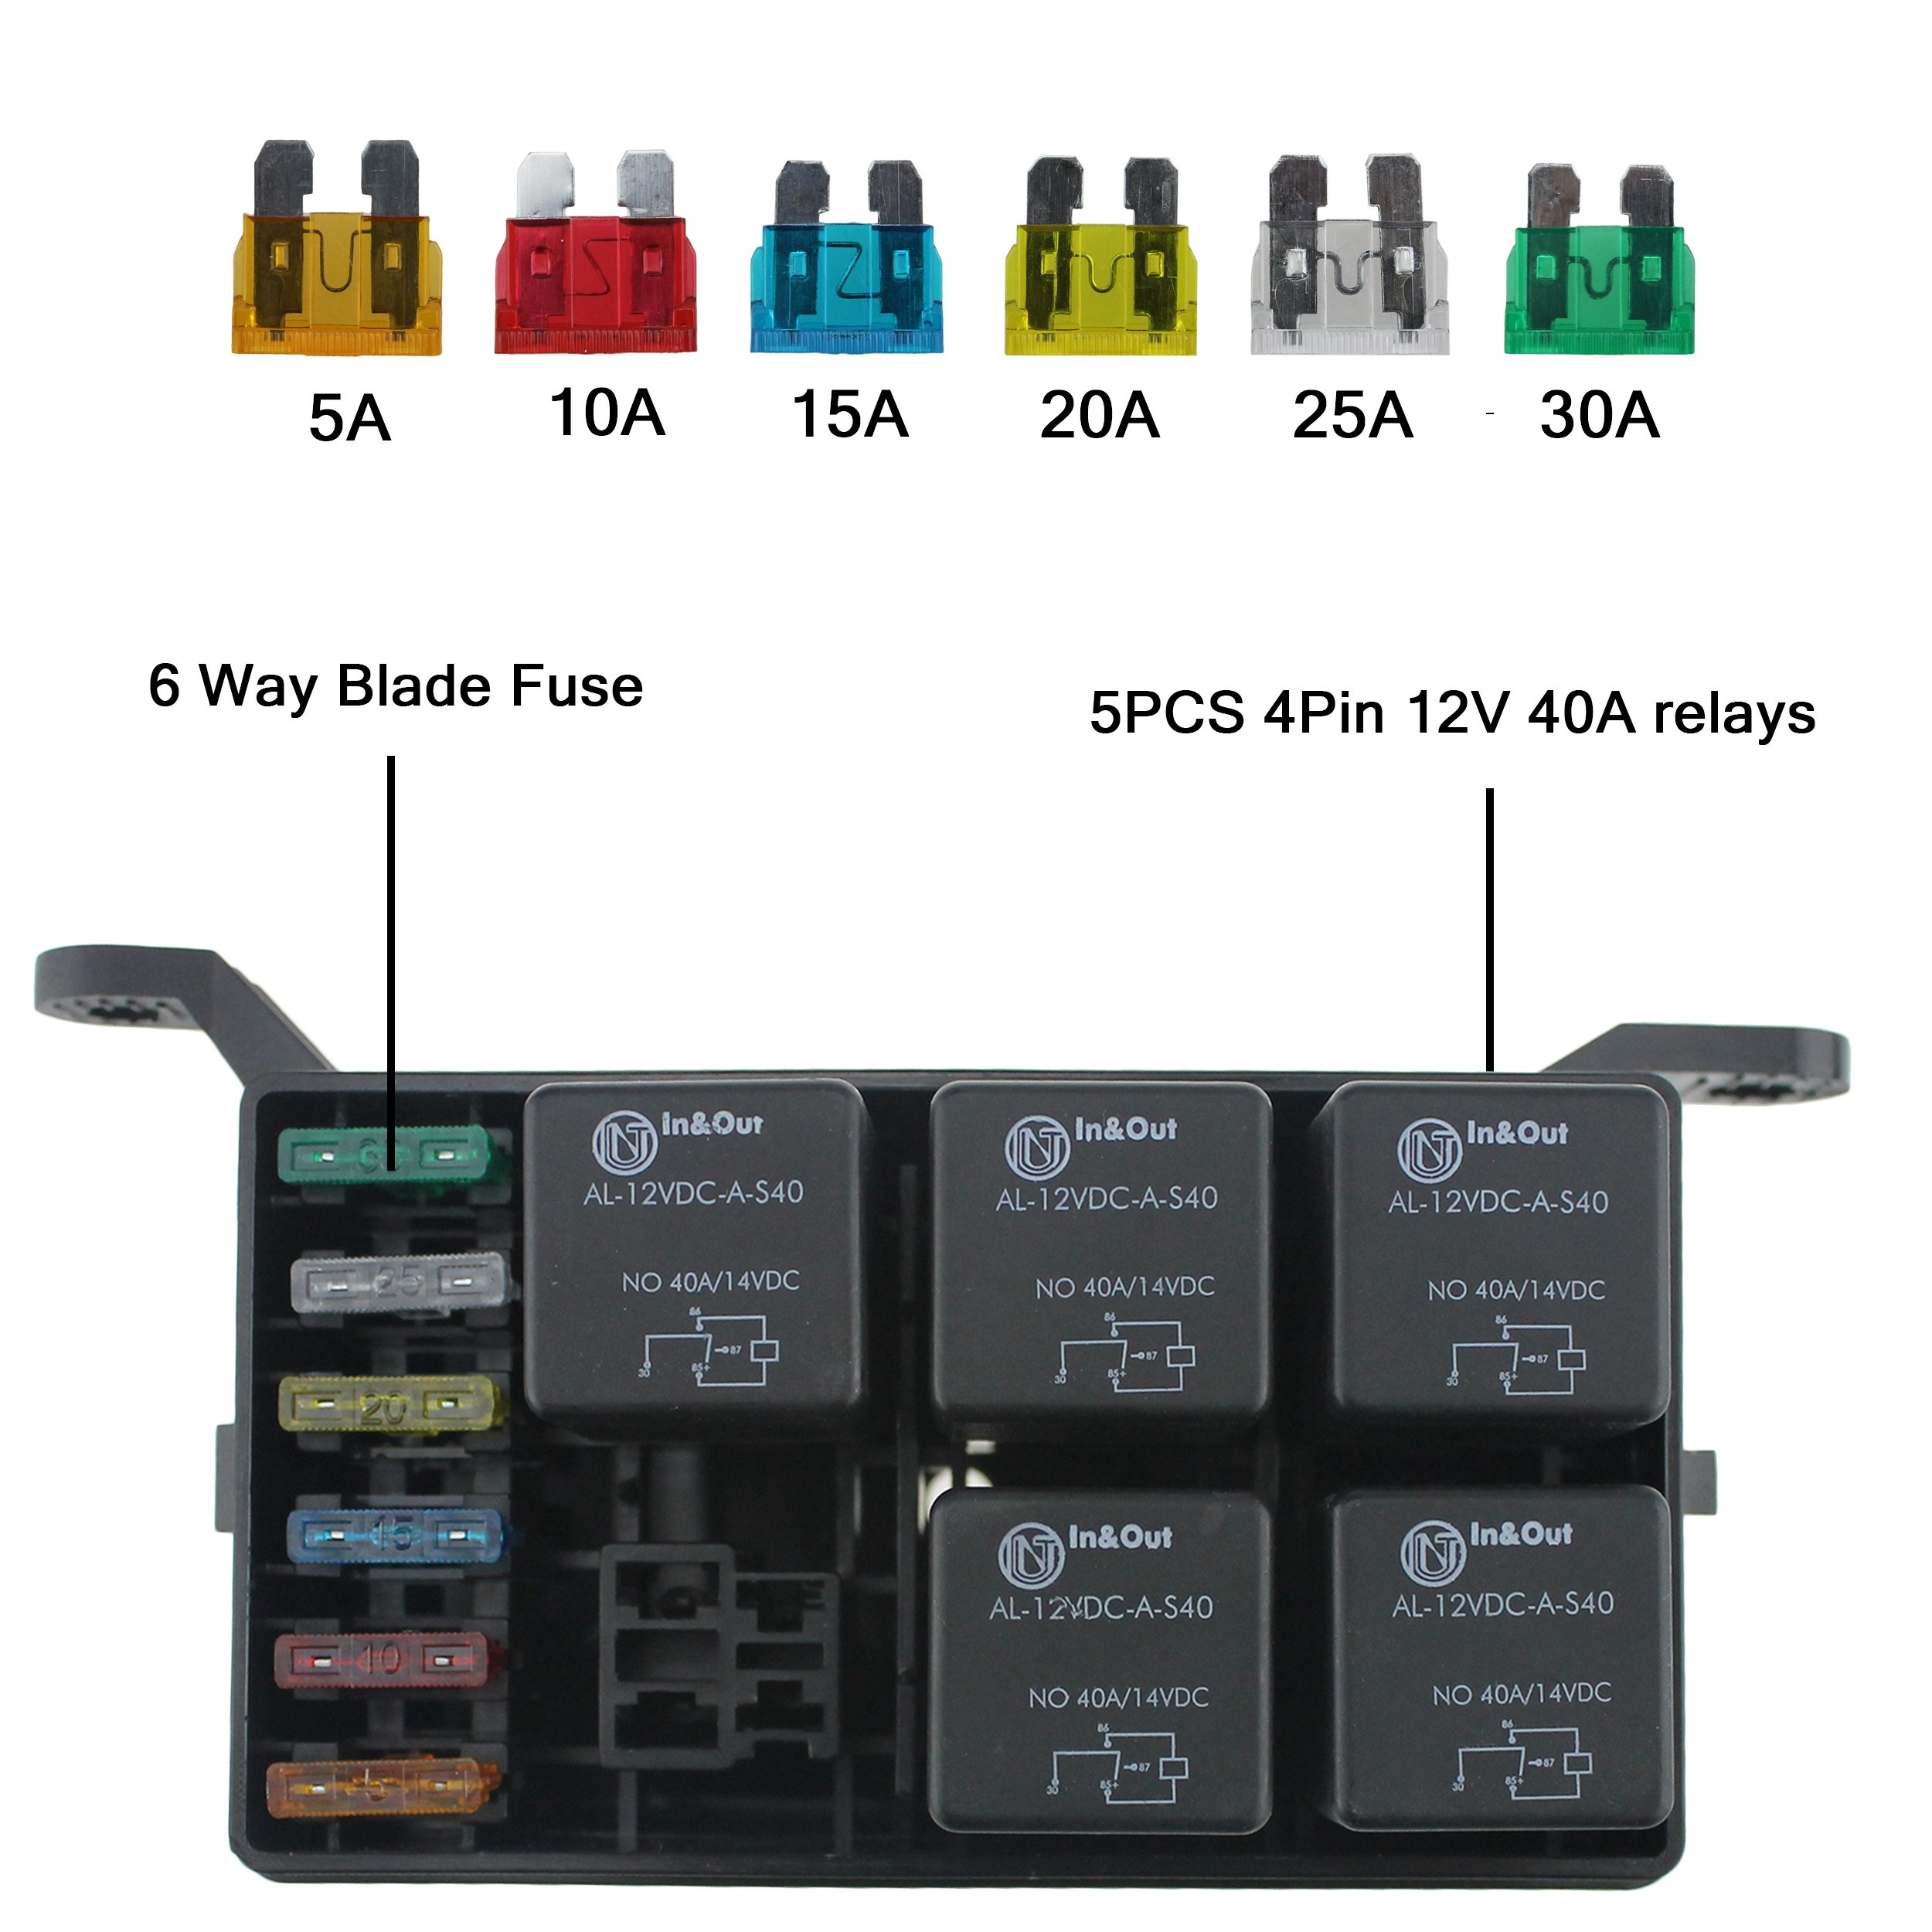 Iztoss 12 Slot Relay Box 6 Relays Blade Fuses Fuse 4 Pin With And 4pins 12v 40a For Automotive Marine Boat F2546 Z Tools